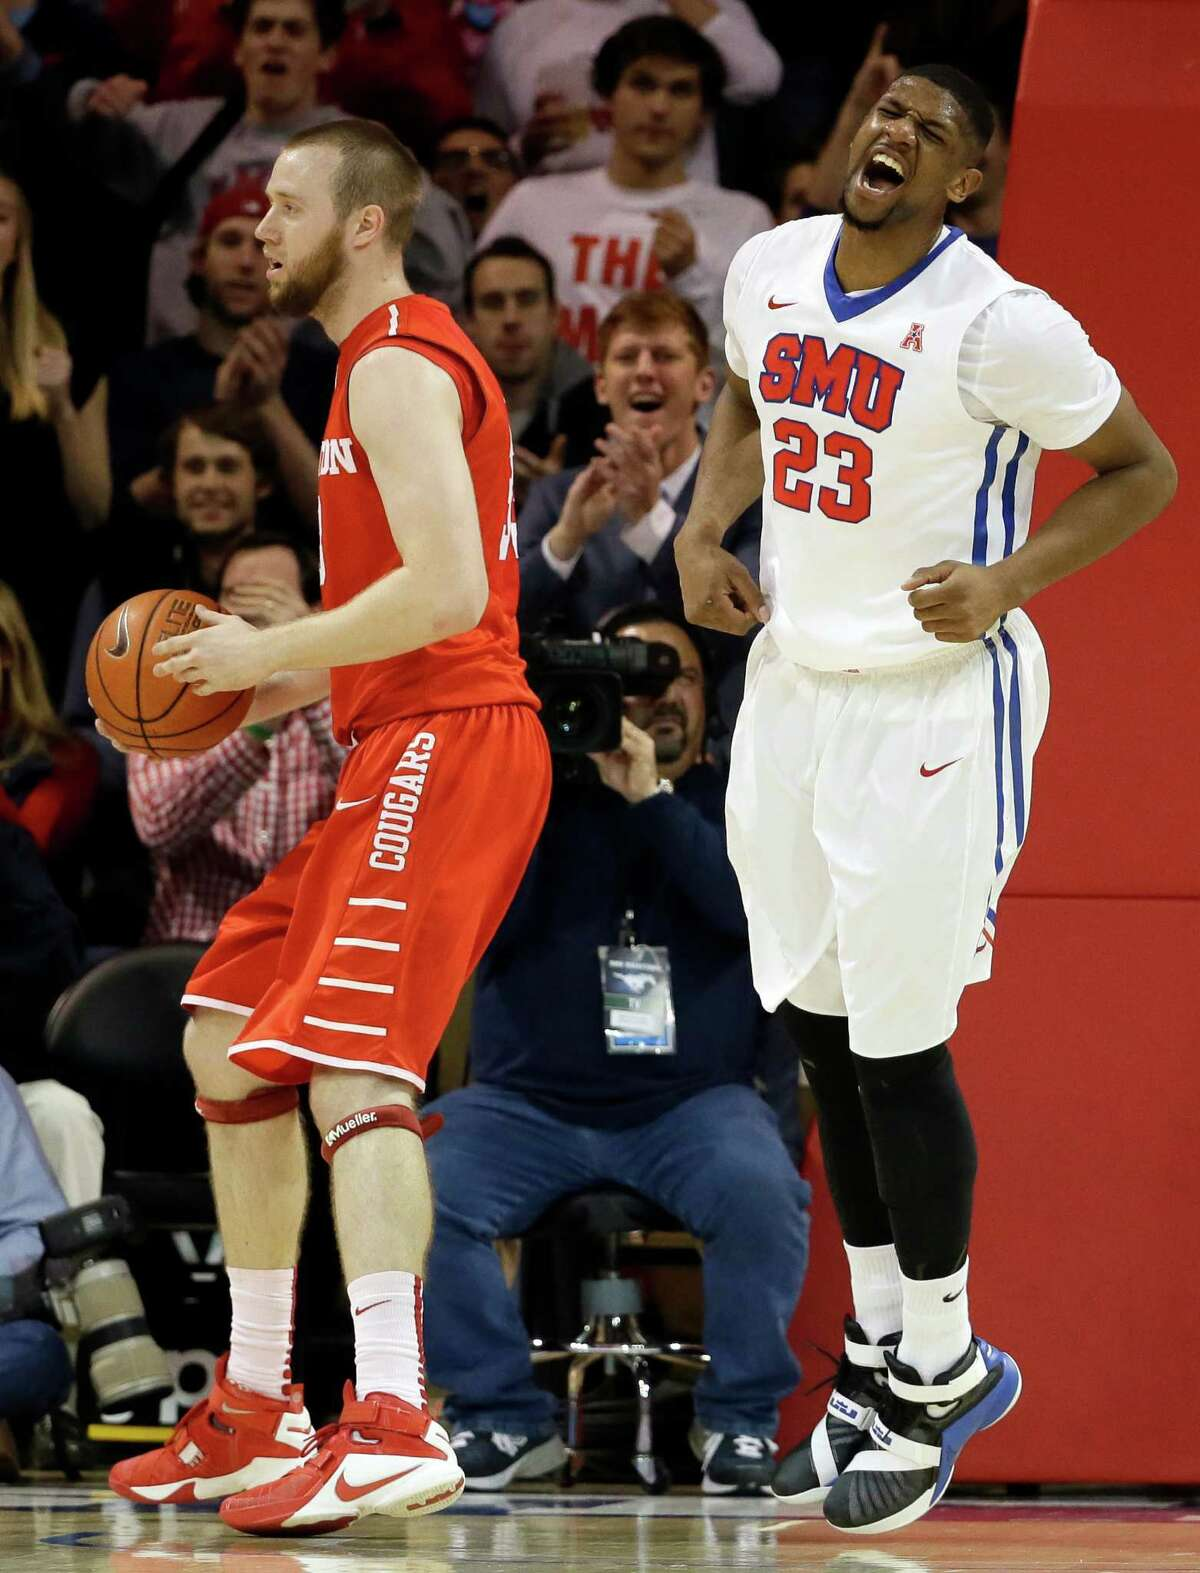 Houston center Kyle Meyer looks to the bench as SMU forward Jordan Tolbert (23) celebrates sinking a basket in the first half of an NCAA college basketball game, Tuesday, Jan. 19, 2016, in Dallas. (AP Photo/Tony Gutierrez)